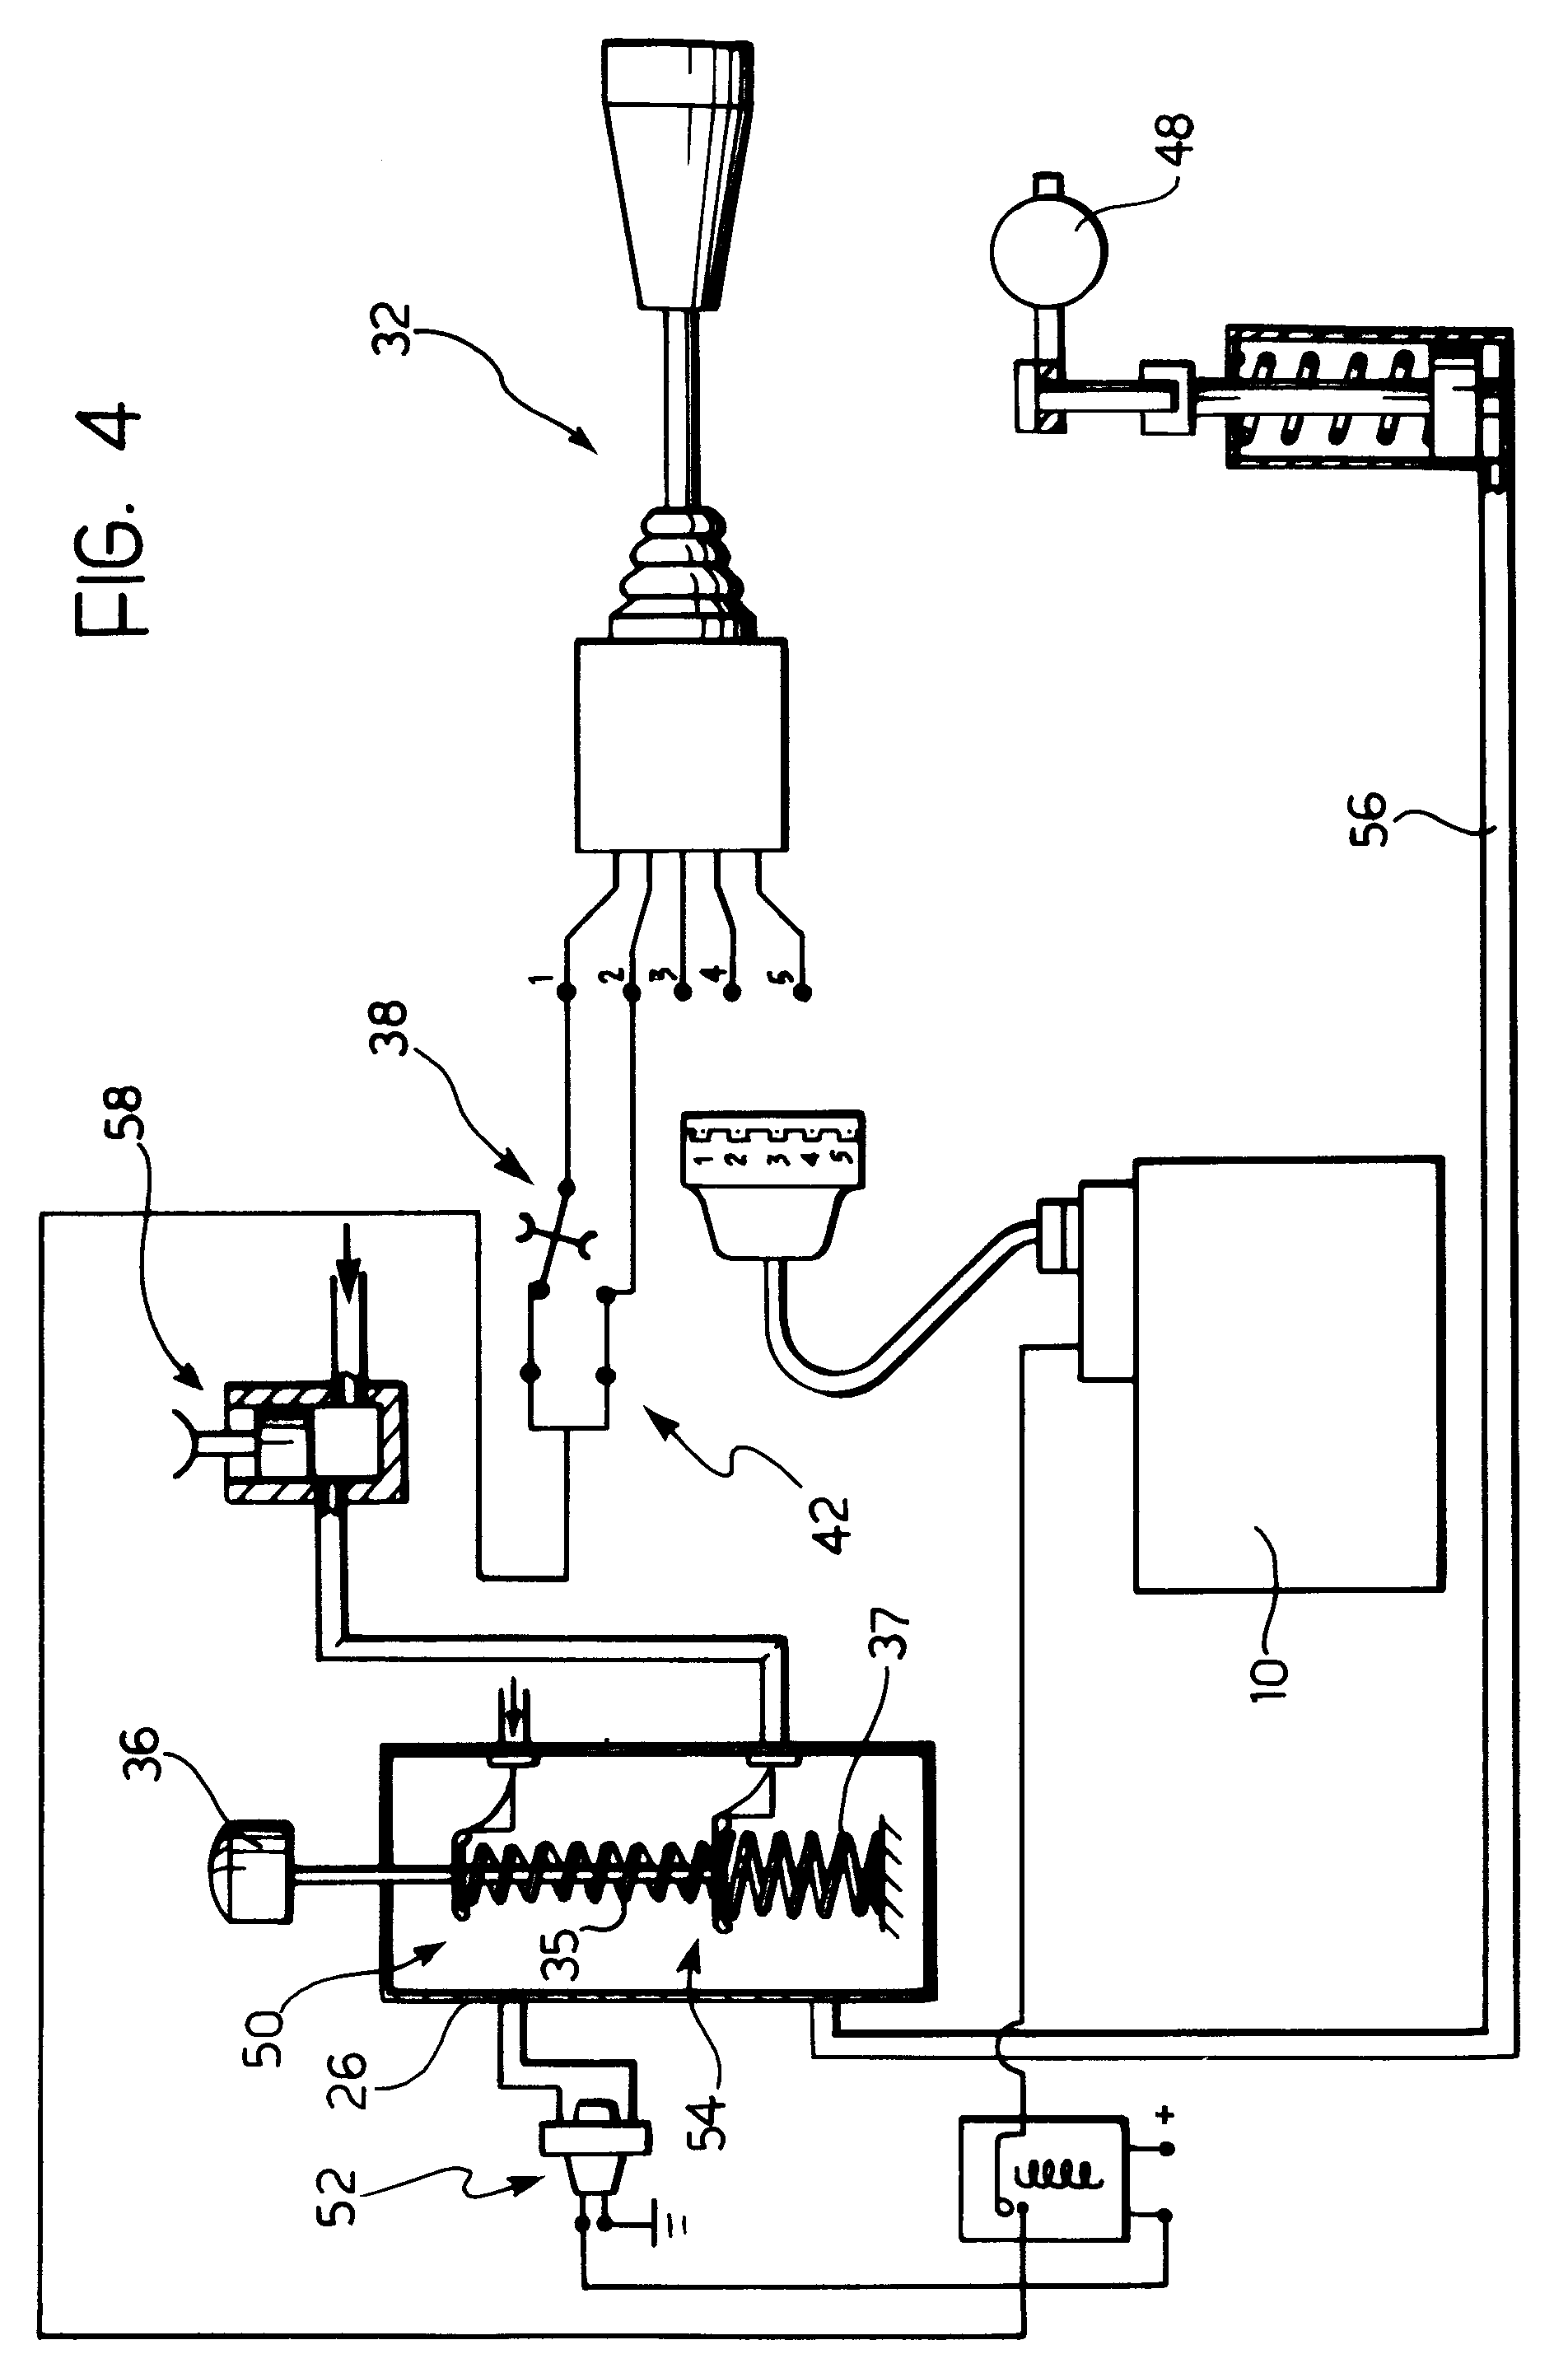 Patent EP0507745A2  A control system for a hydraulic